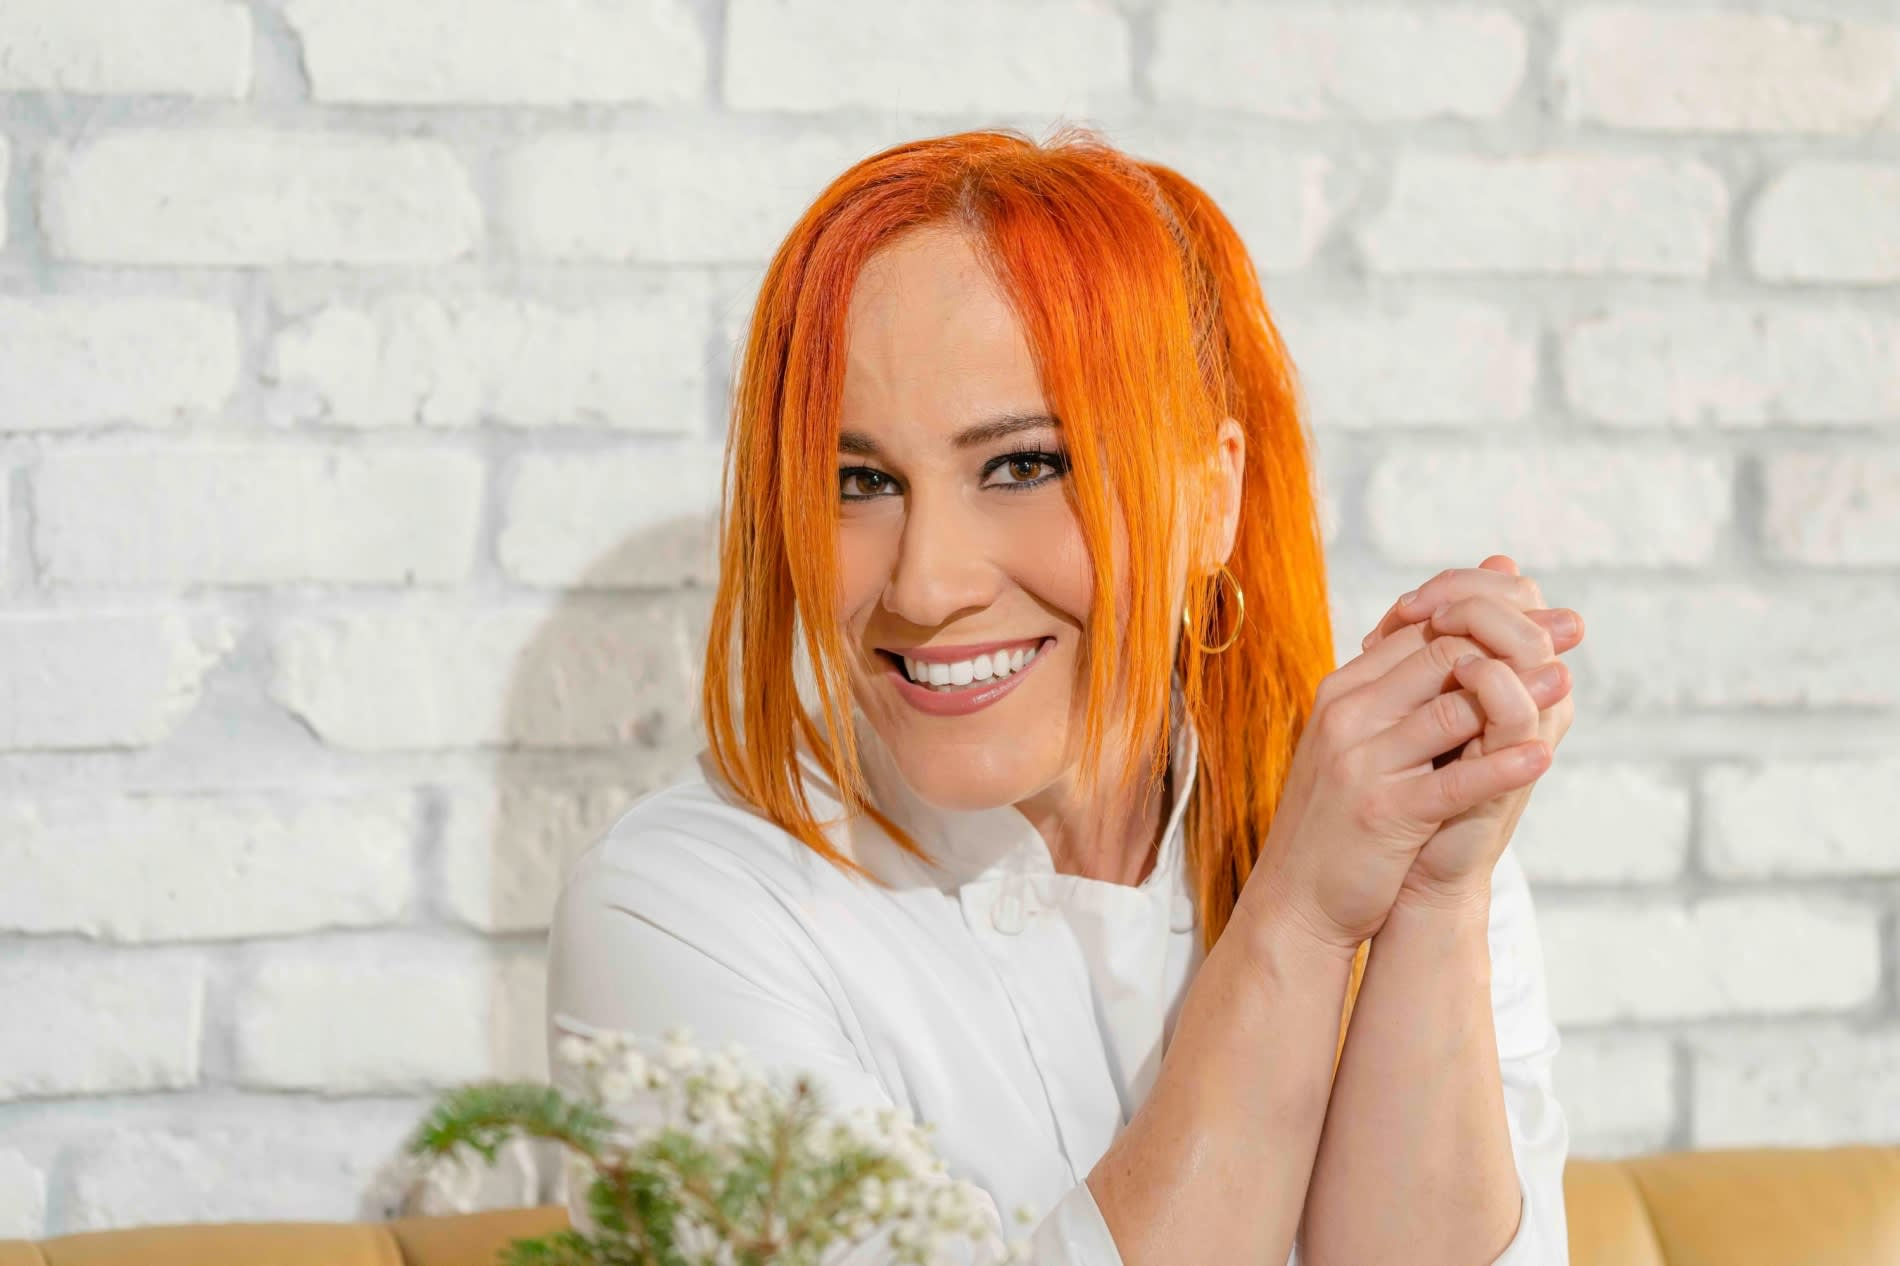 Star chef and culinary mogul Adrianne Calvo takes her signature journey of the senses